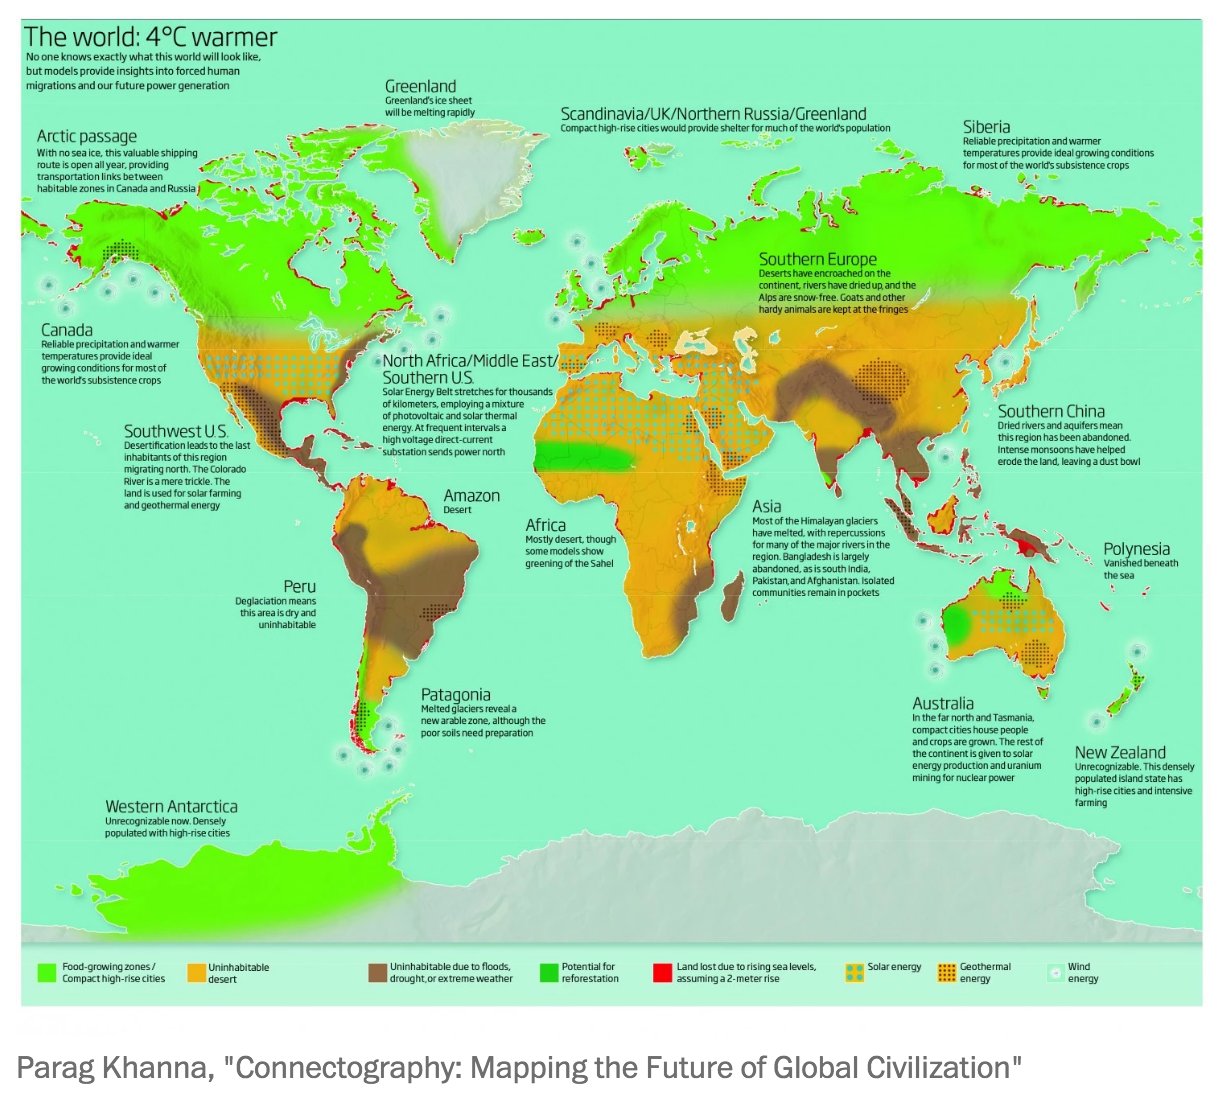 Mapping the future of the world 4 degrees warmer